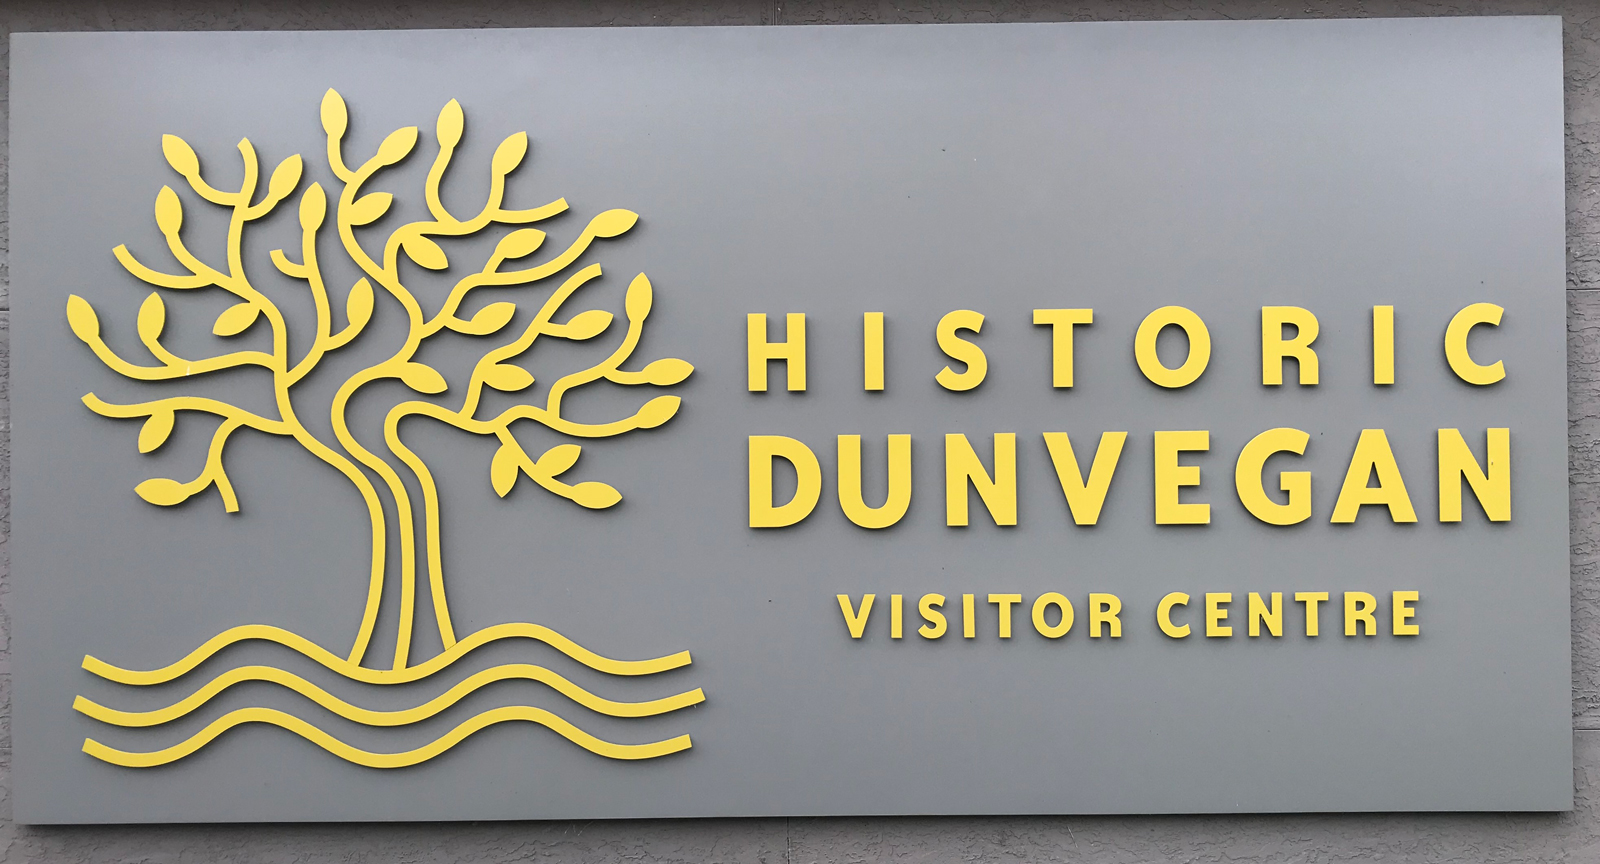 A grey sign with yellow text and graphic shows a Dunvegan Maple over three curving lines representing the Peace River.